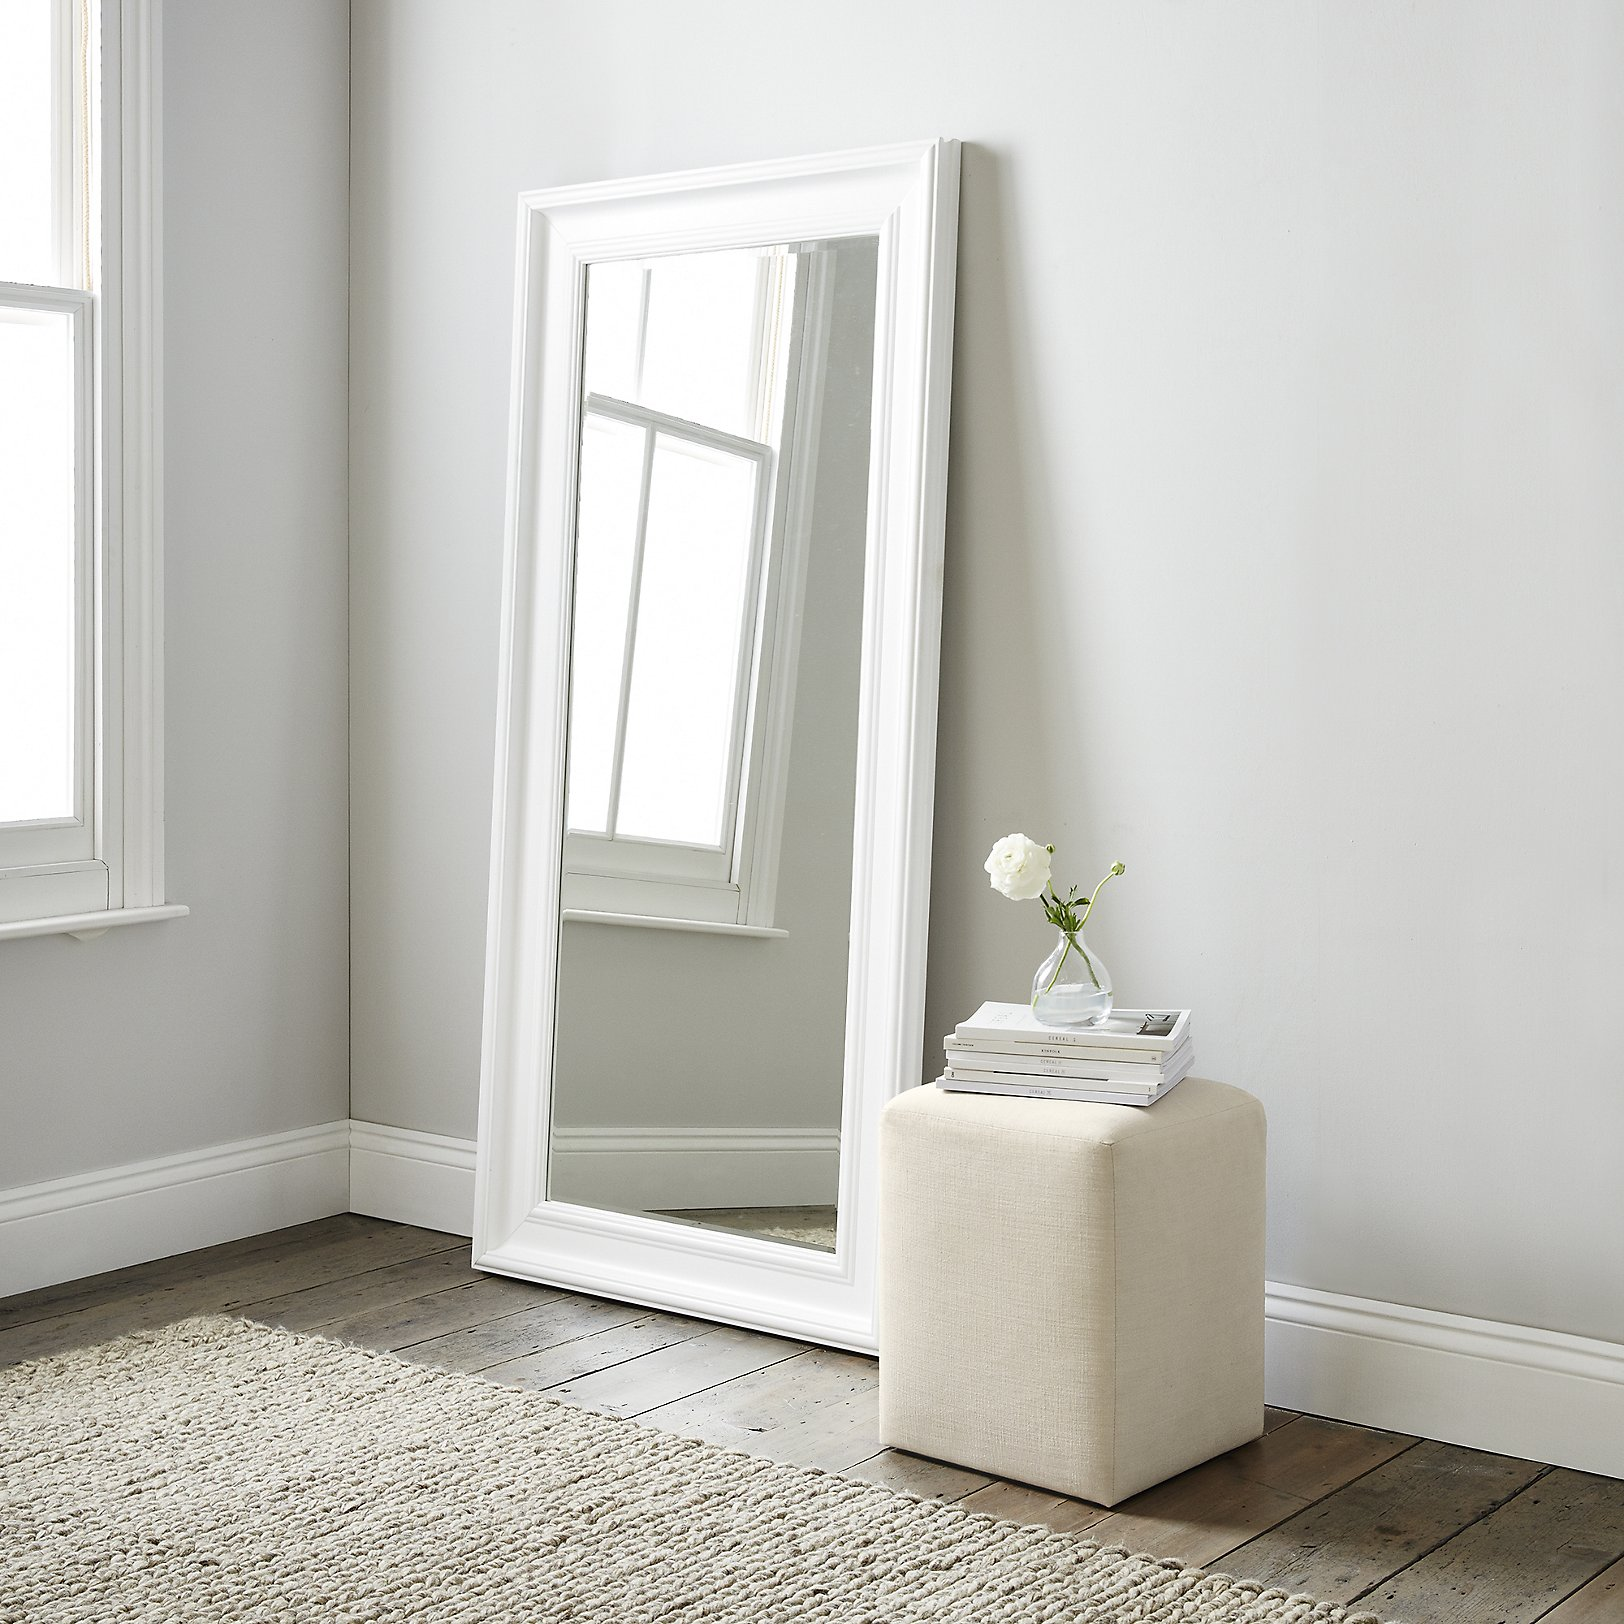 mirrors  wall floor dressing table  full length  the white  - portland floor mirror  white